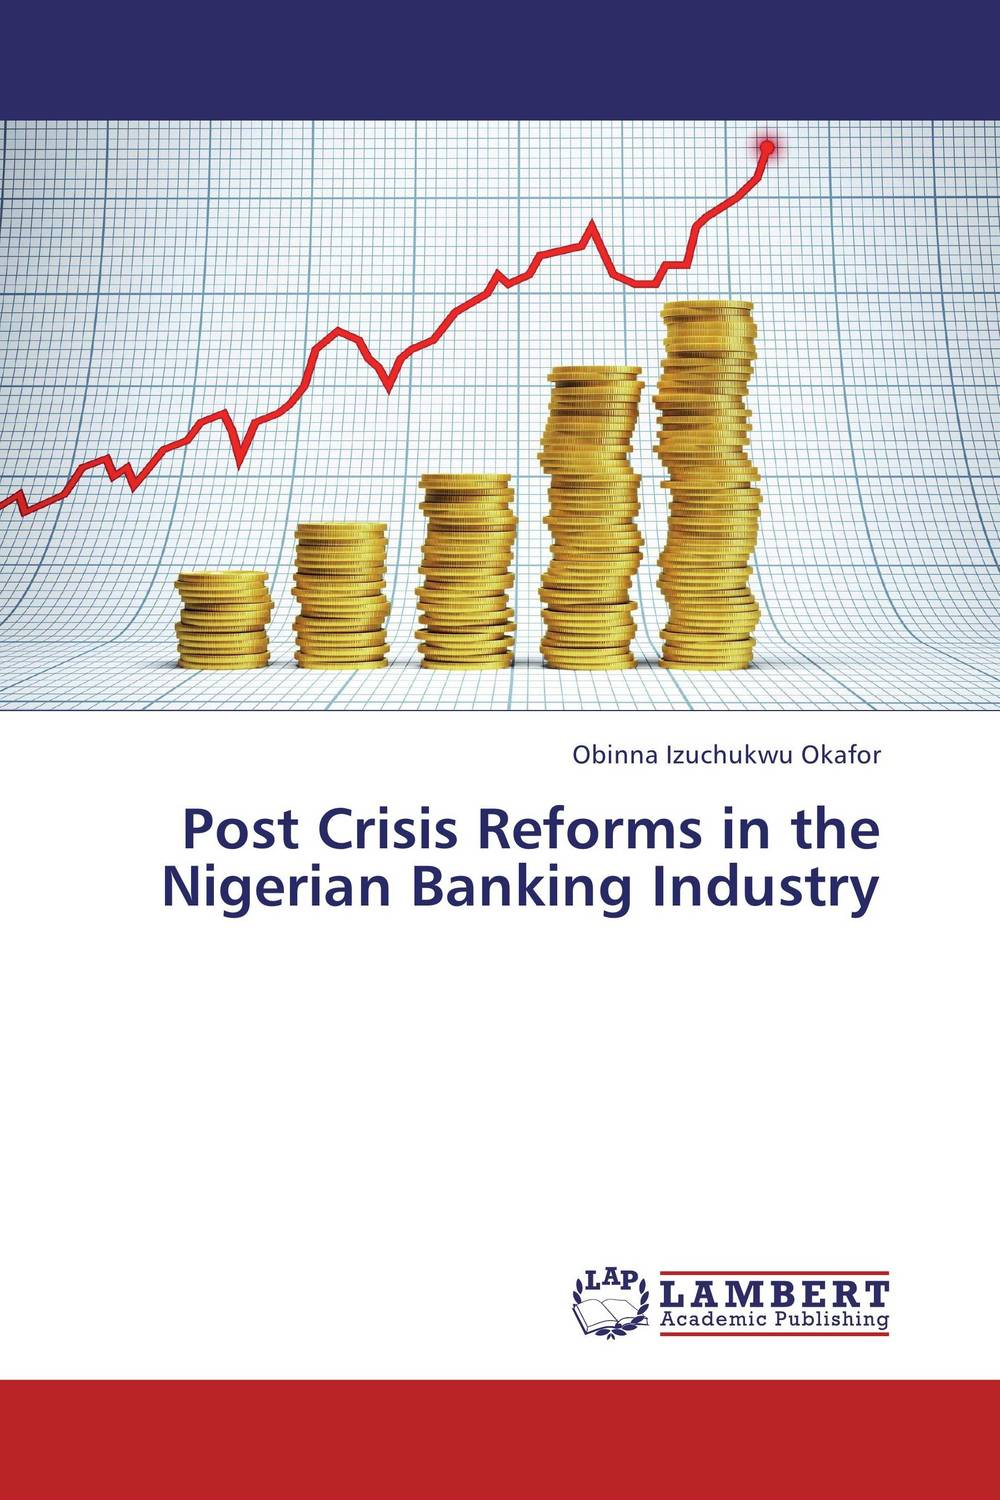 Post Crisis Reforms in the Nigerian Banking Industry